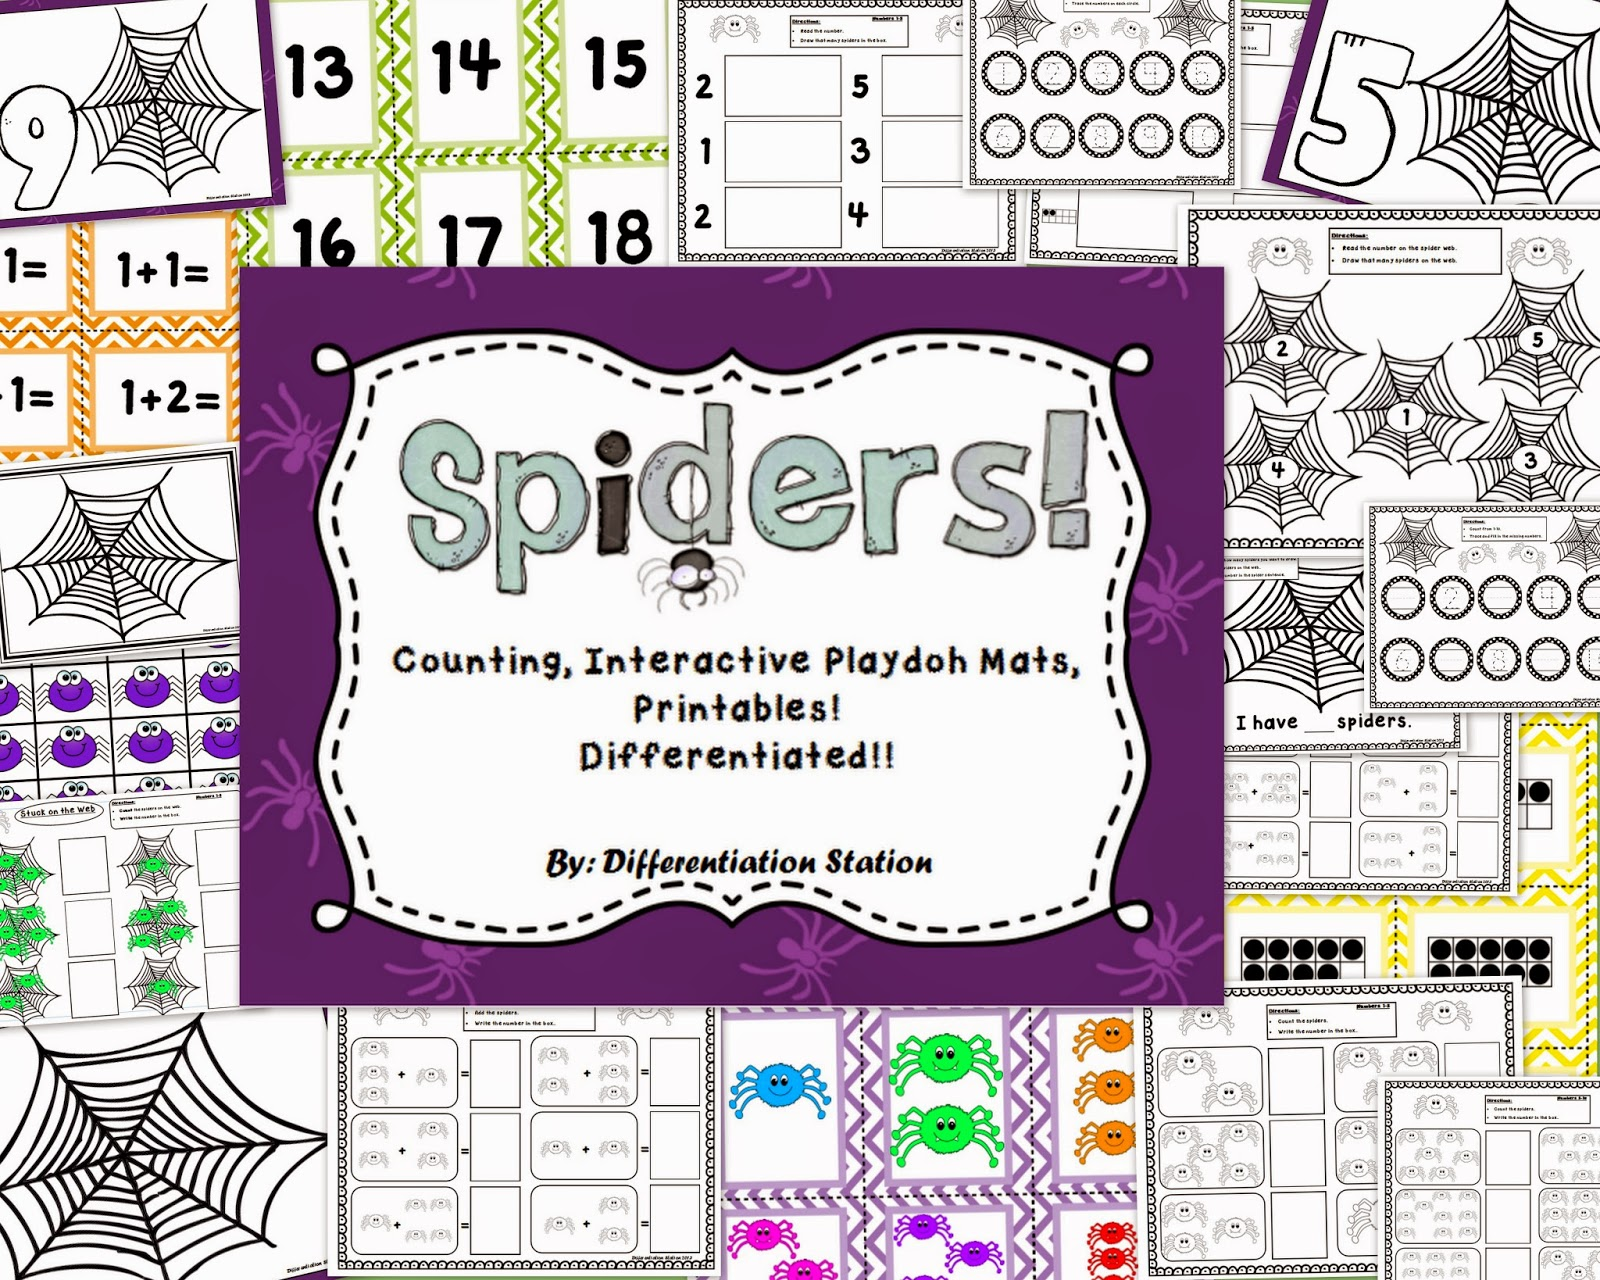 http://www.teacherspayteachers.com/Product/Spiders-Interactive-Play-Dough-Mats-Counting-Centers-and-Games-and-Printables-912821